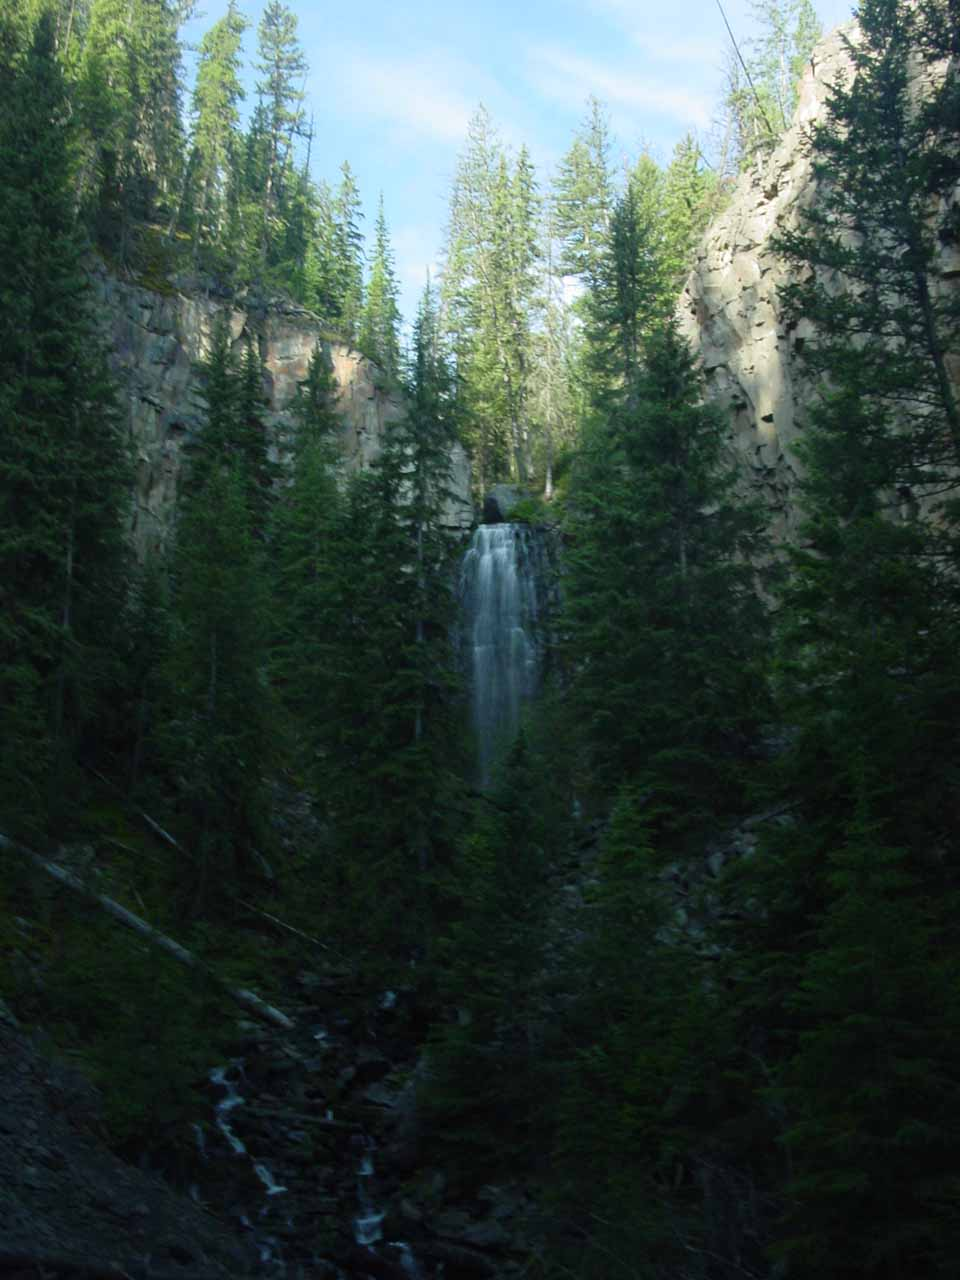 This view of Lost Creek Falls was from the end of the official trail as seen back in June 2004